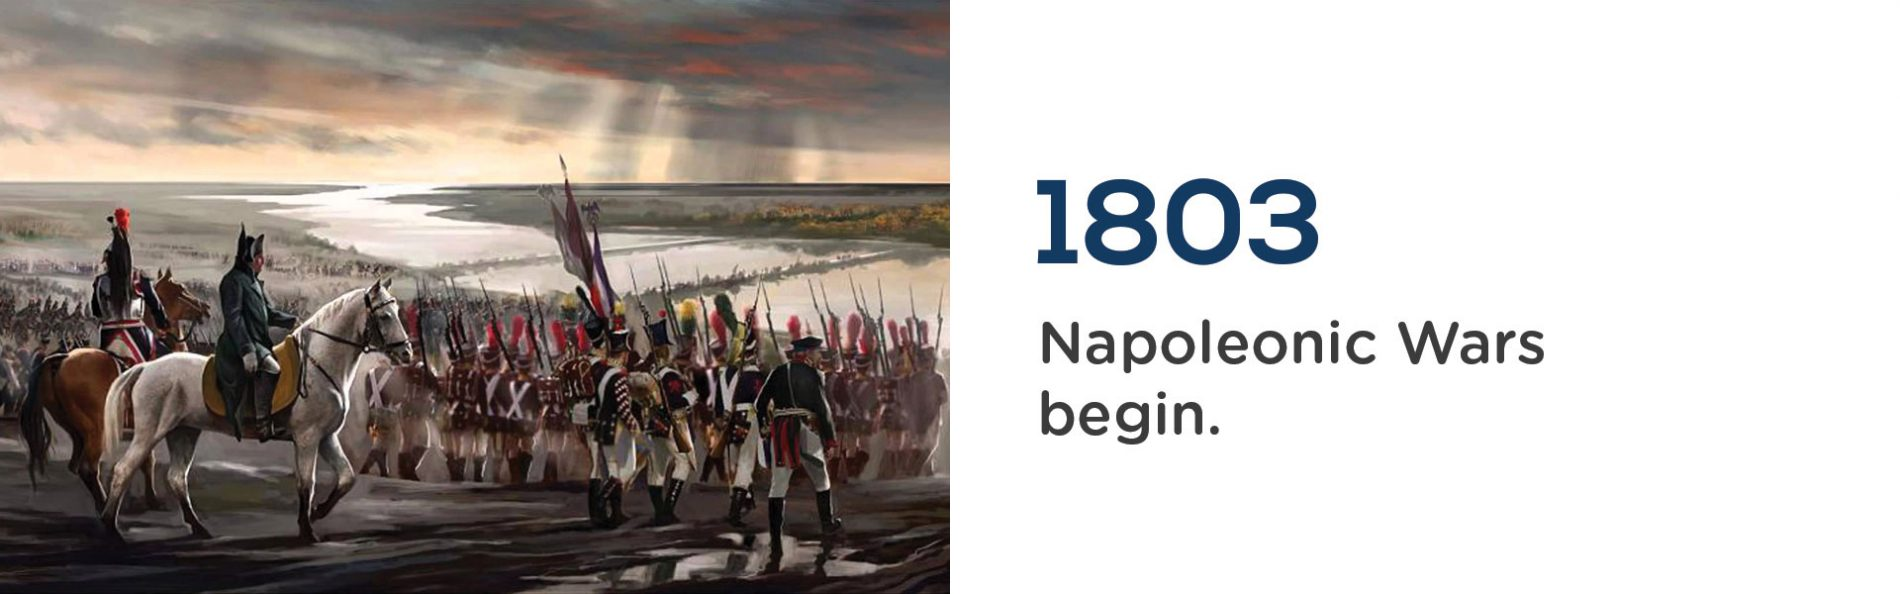 The Napoloeonic Wars begin in 1803. Wrigley Claydon Solicitors, Trusted for 200 years